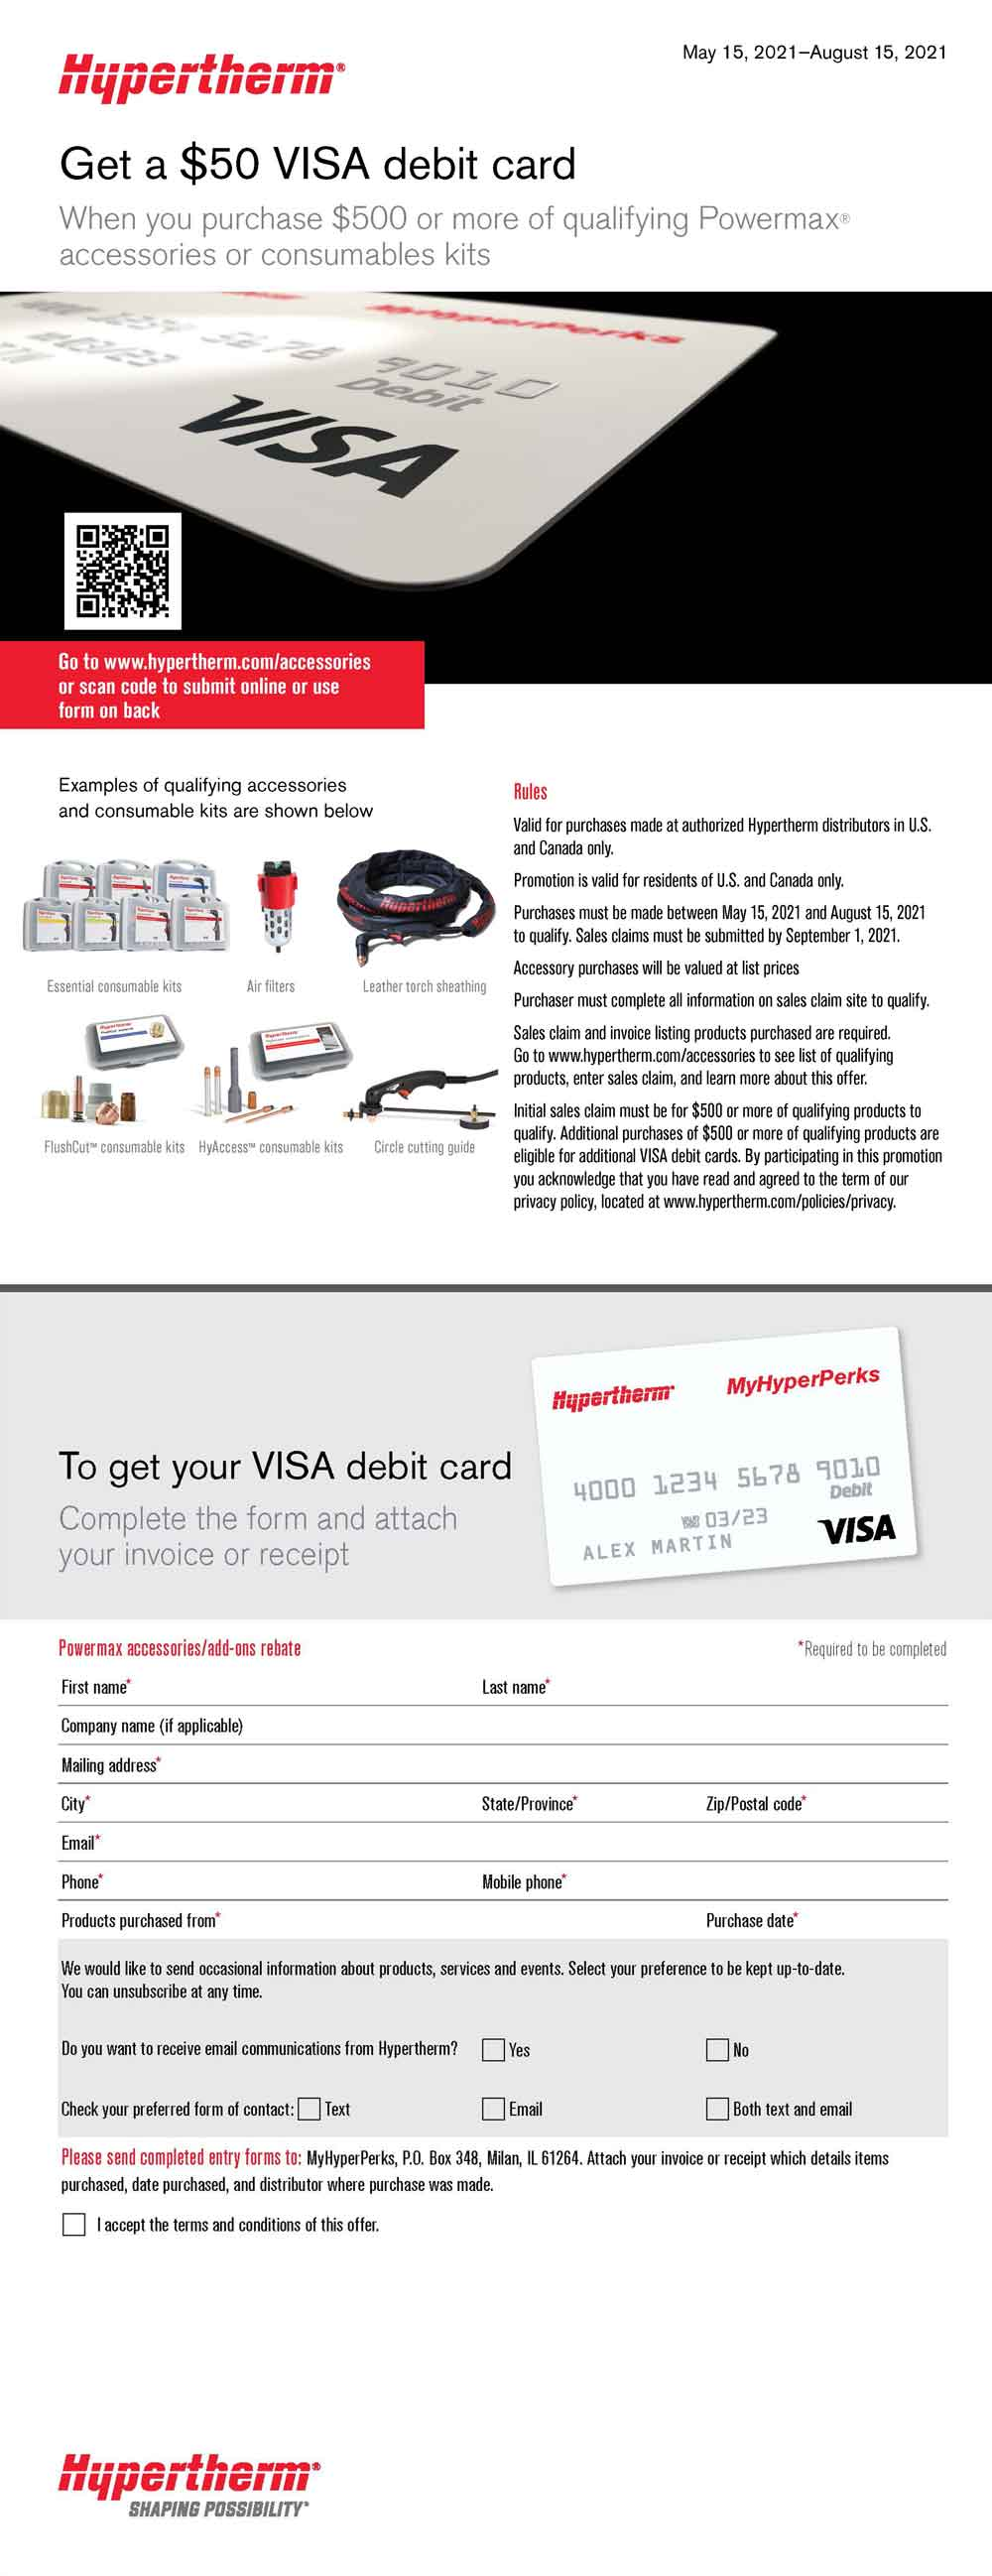 Get a $50 Debit Card when you purchase $500 or more of qualifying Powermax accessories or consumable kits